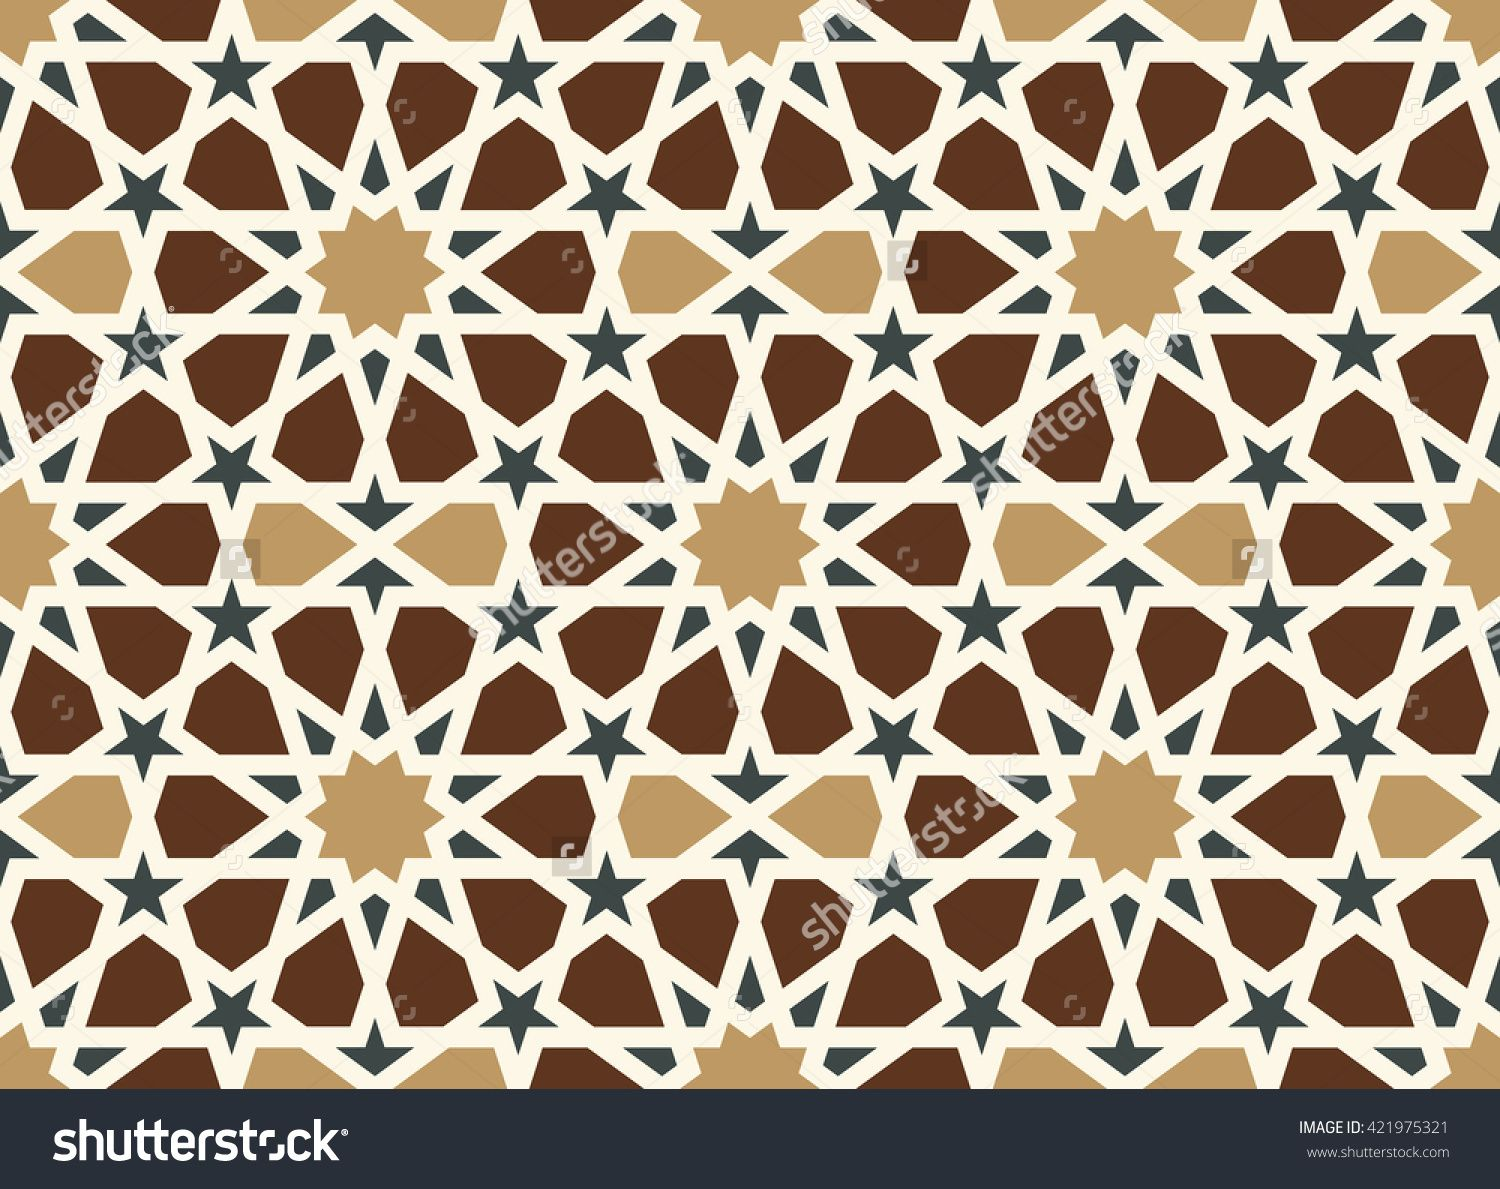 stock-vector-morocco-arabic-pattern-traditional-islamic-design-background-brown-ocher-black-white-colors-421975321.jpg 1.500×1.189 piksel